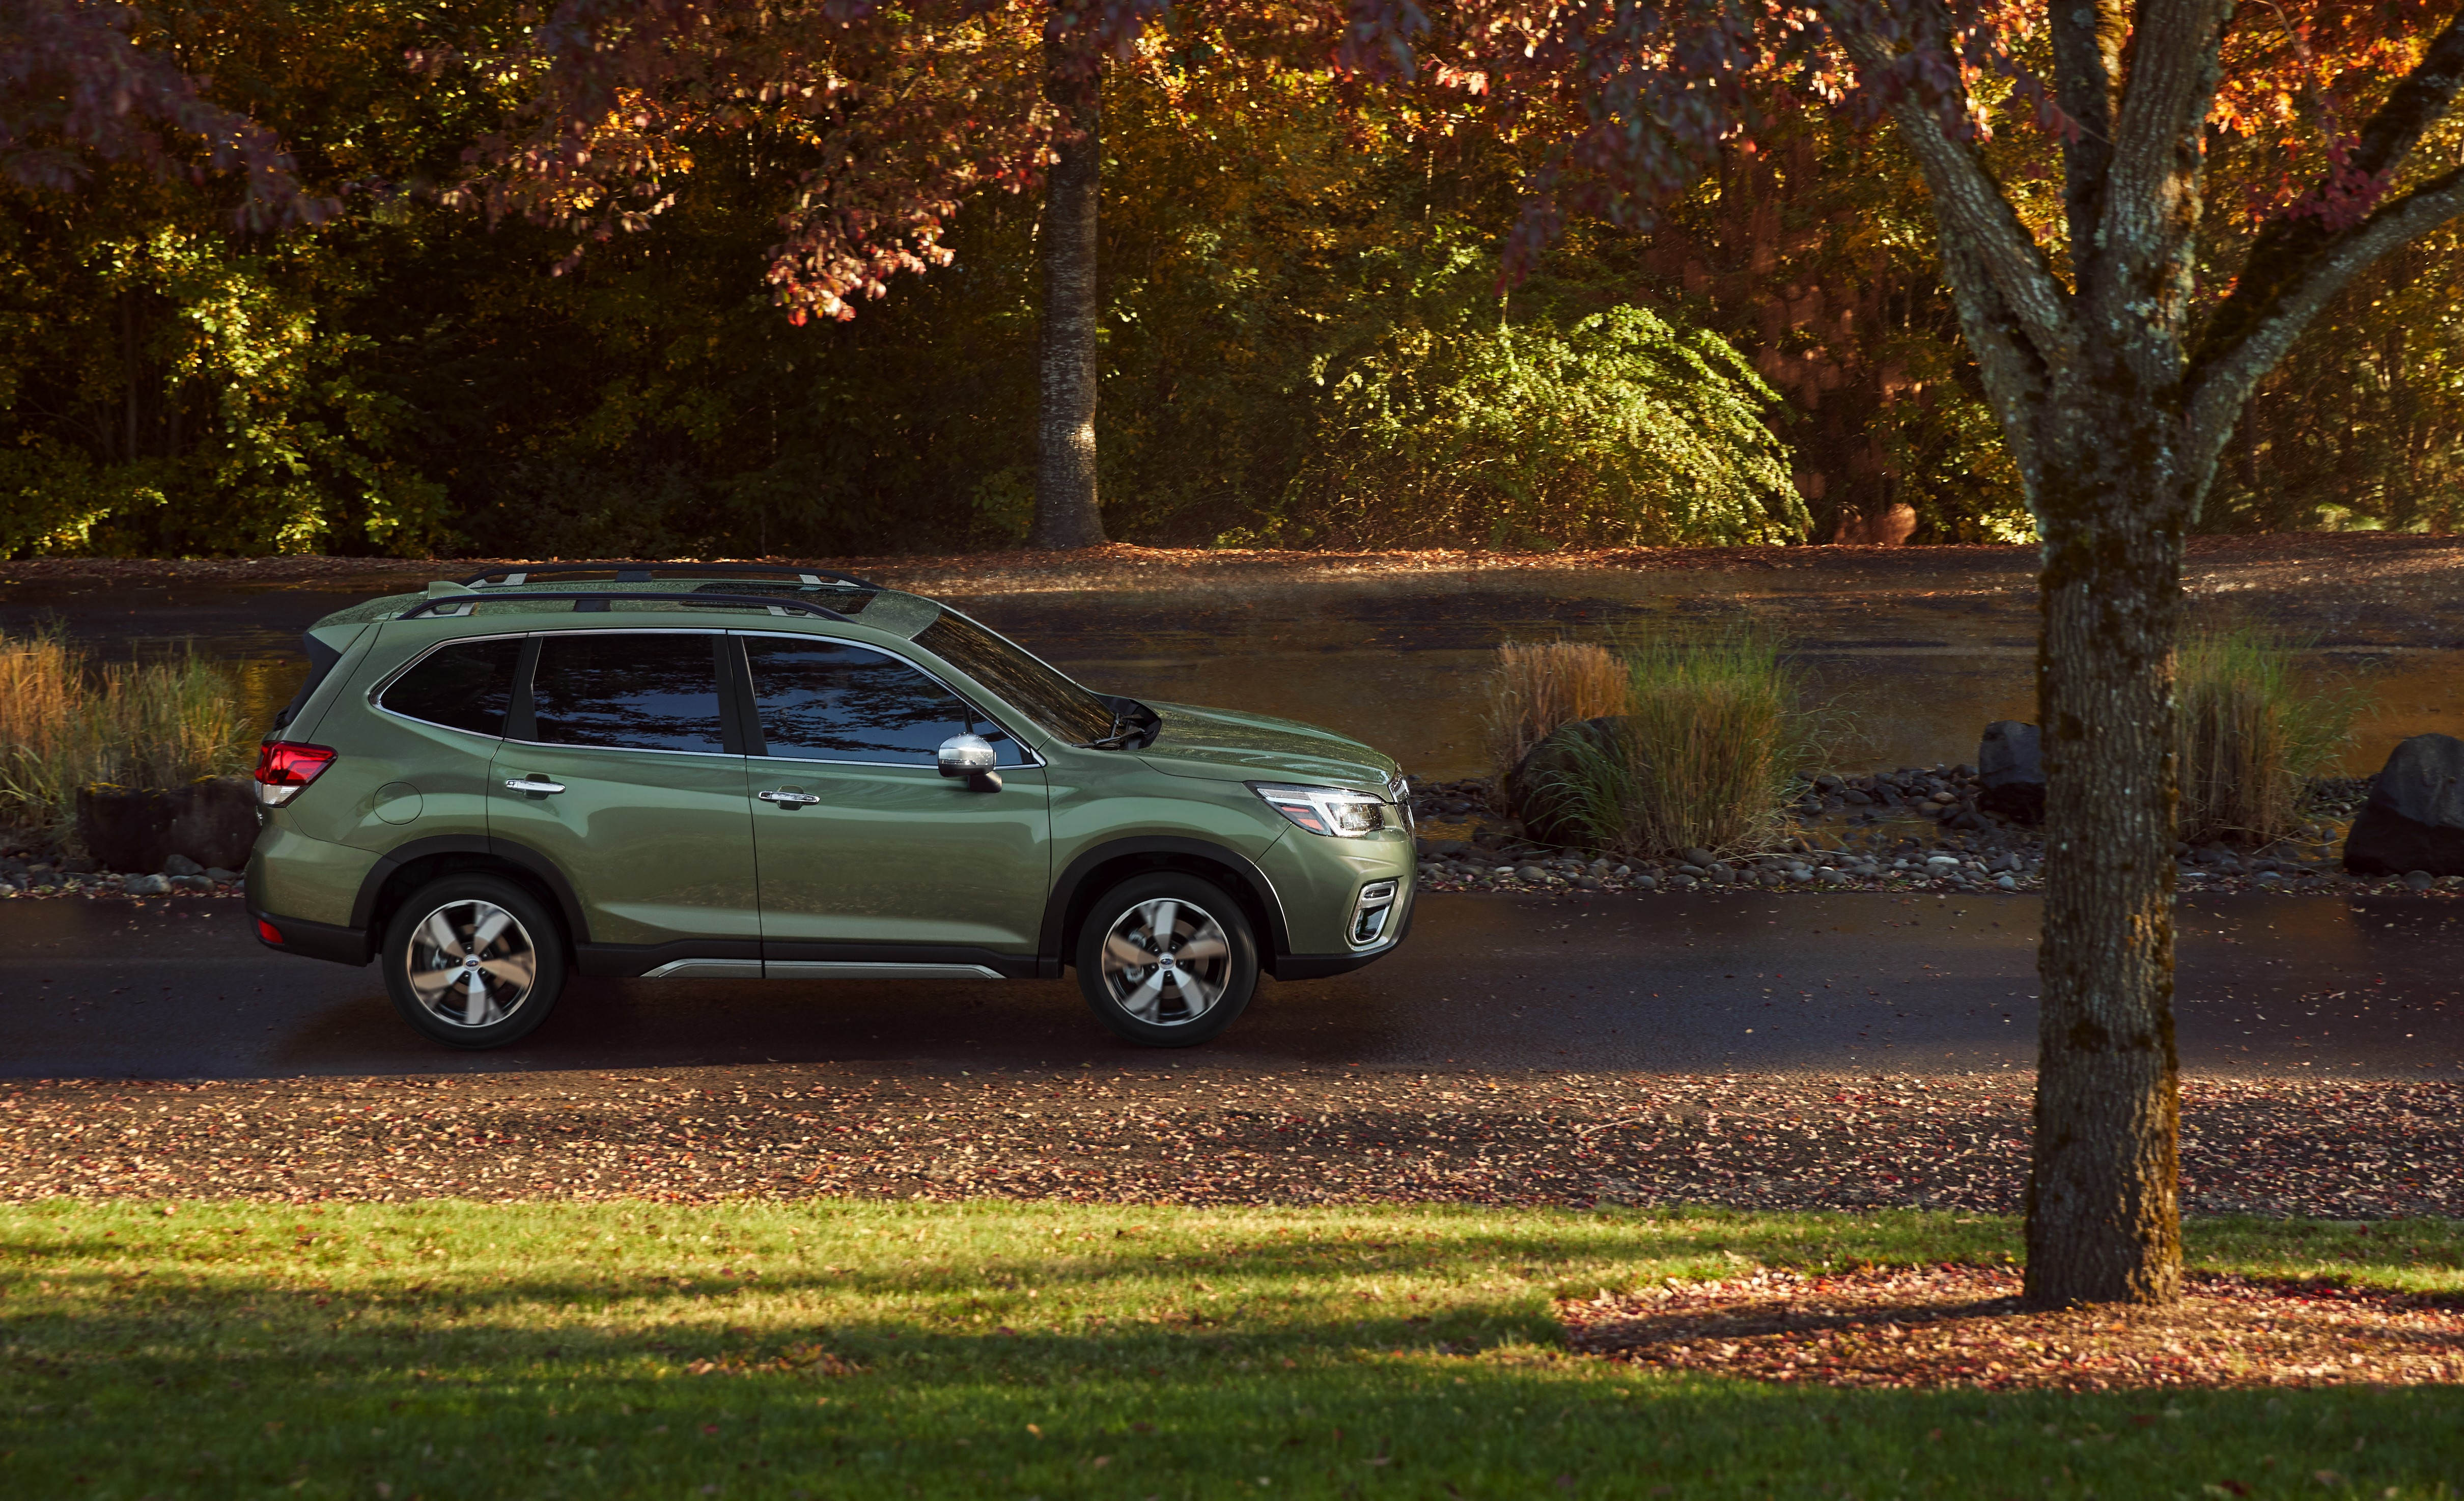 The Subaru Forester Has Its World Premiere In New York Of 19 Inch Wheels On Wrx Full Size 3 Mb 4840px X 2948px